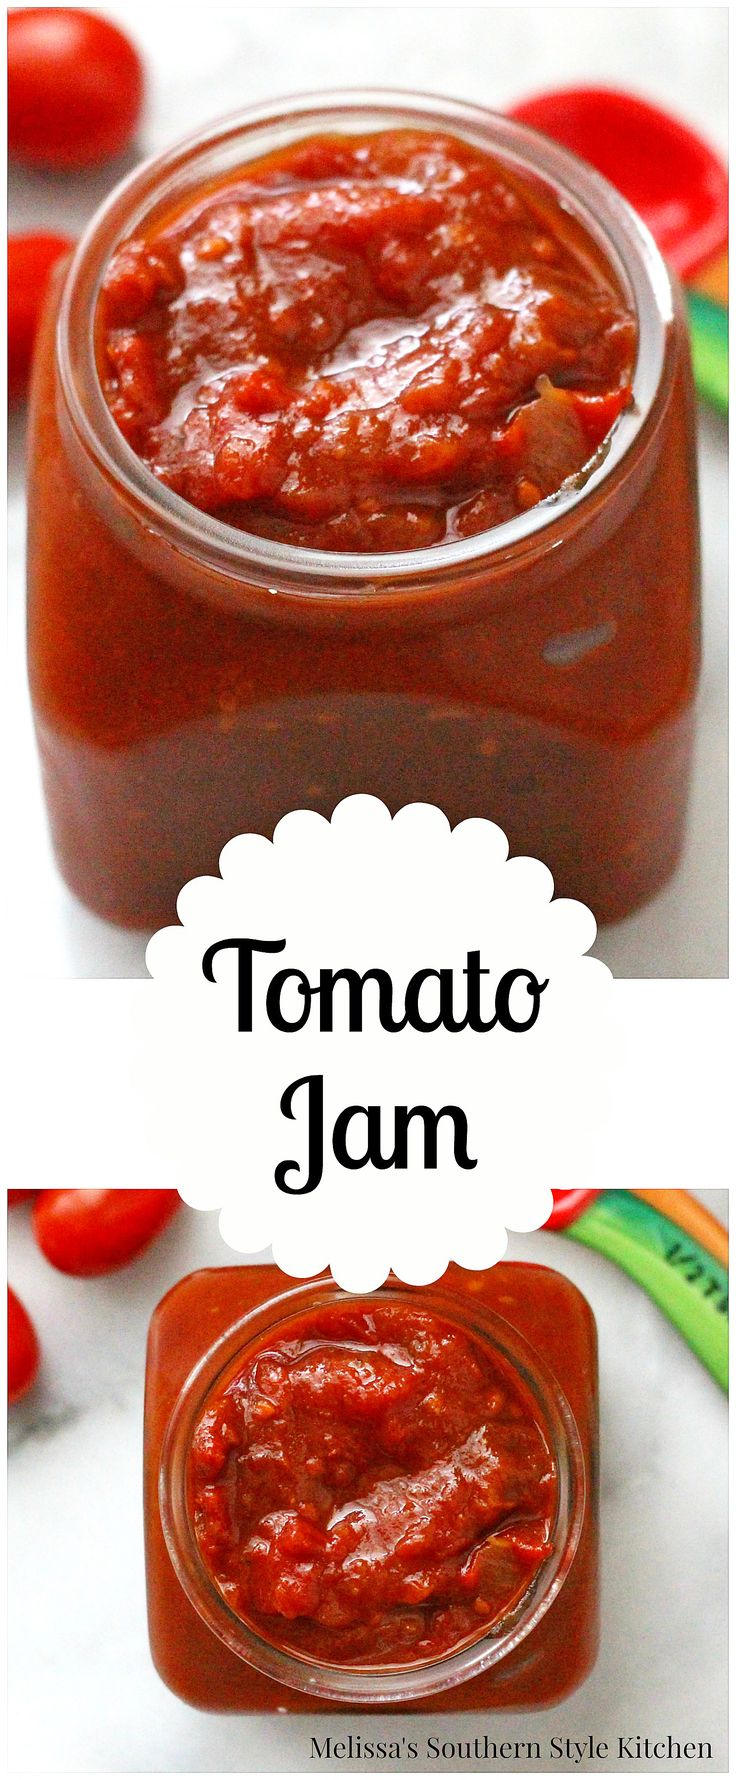 how to prepare tomato jam